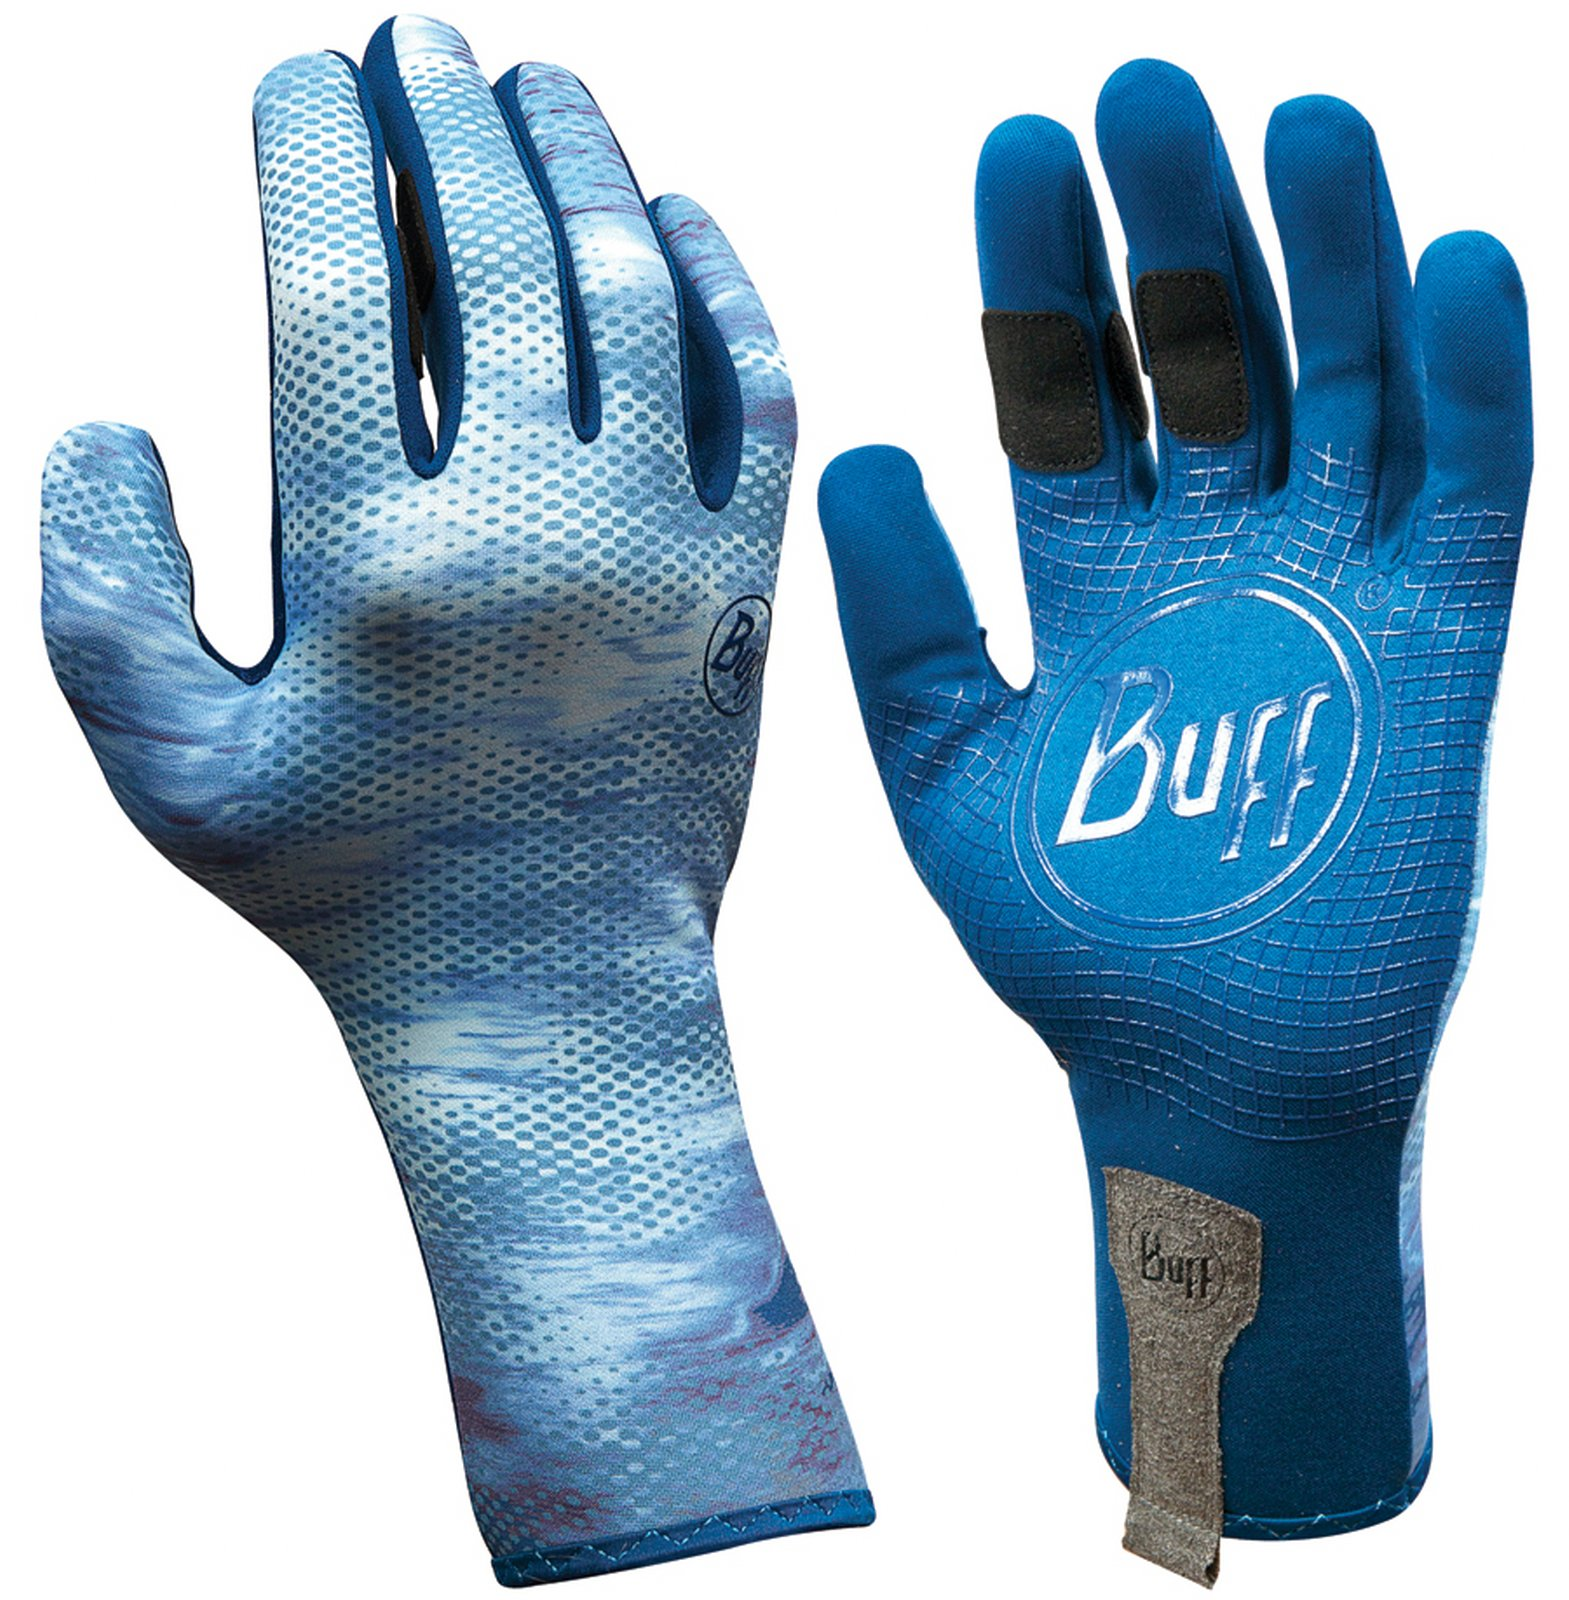 buff sport series mxs gloves fly fishing cold weather